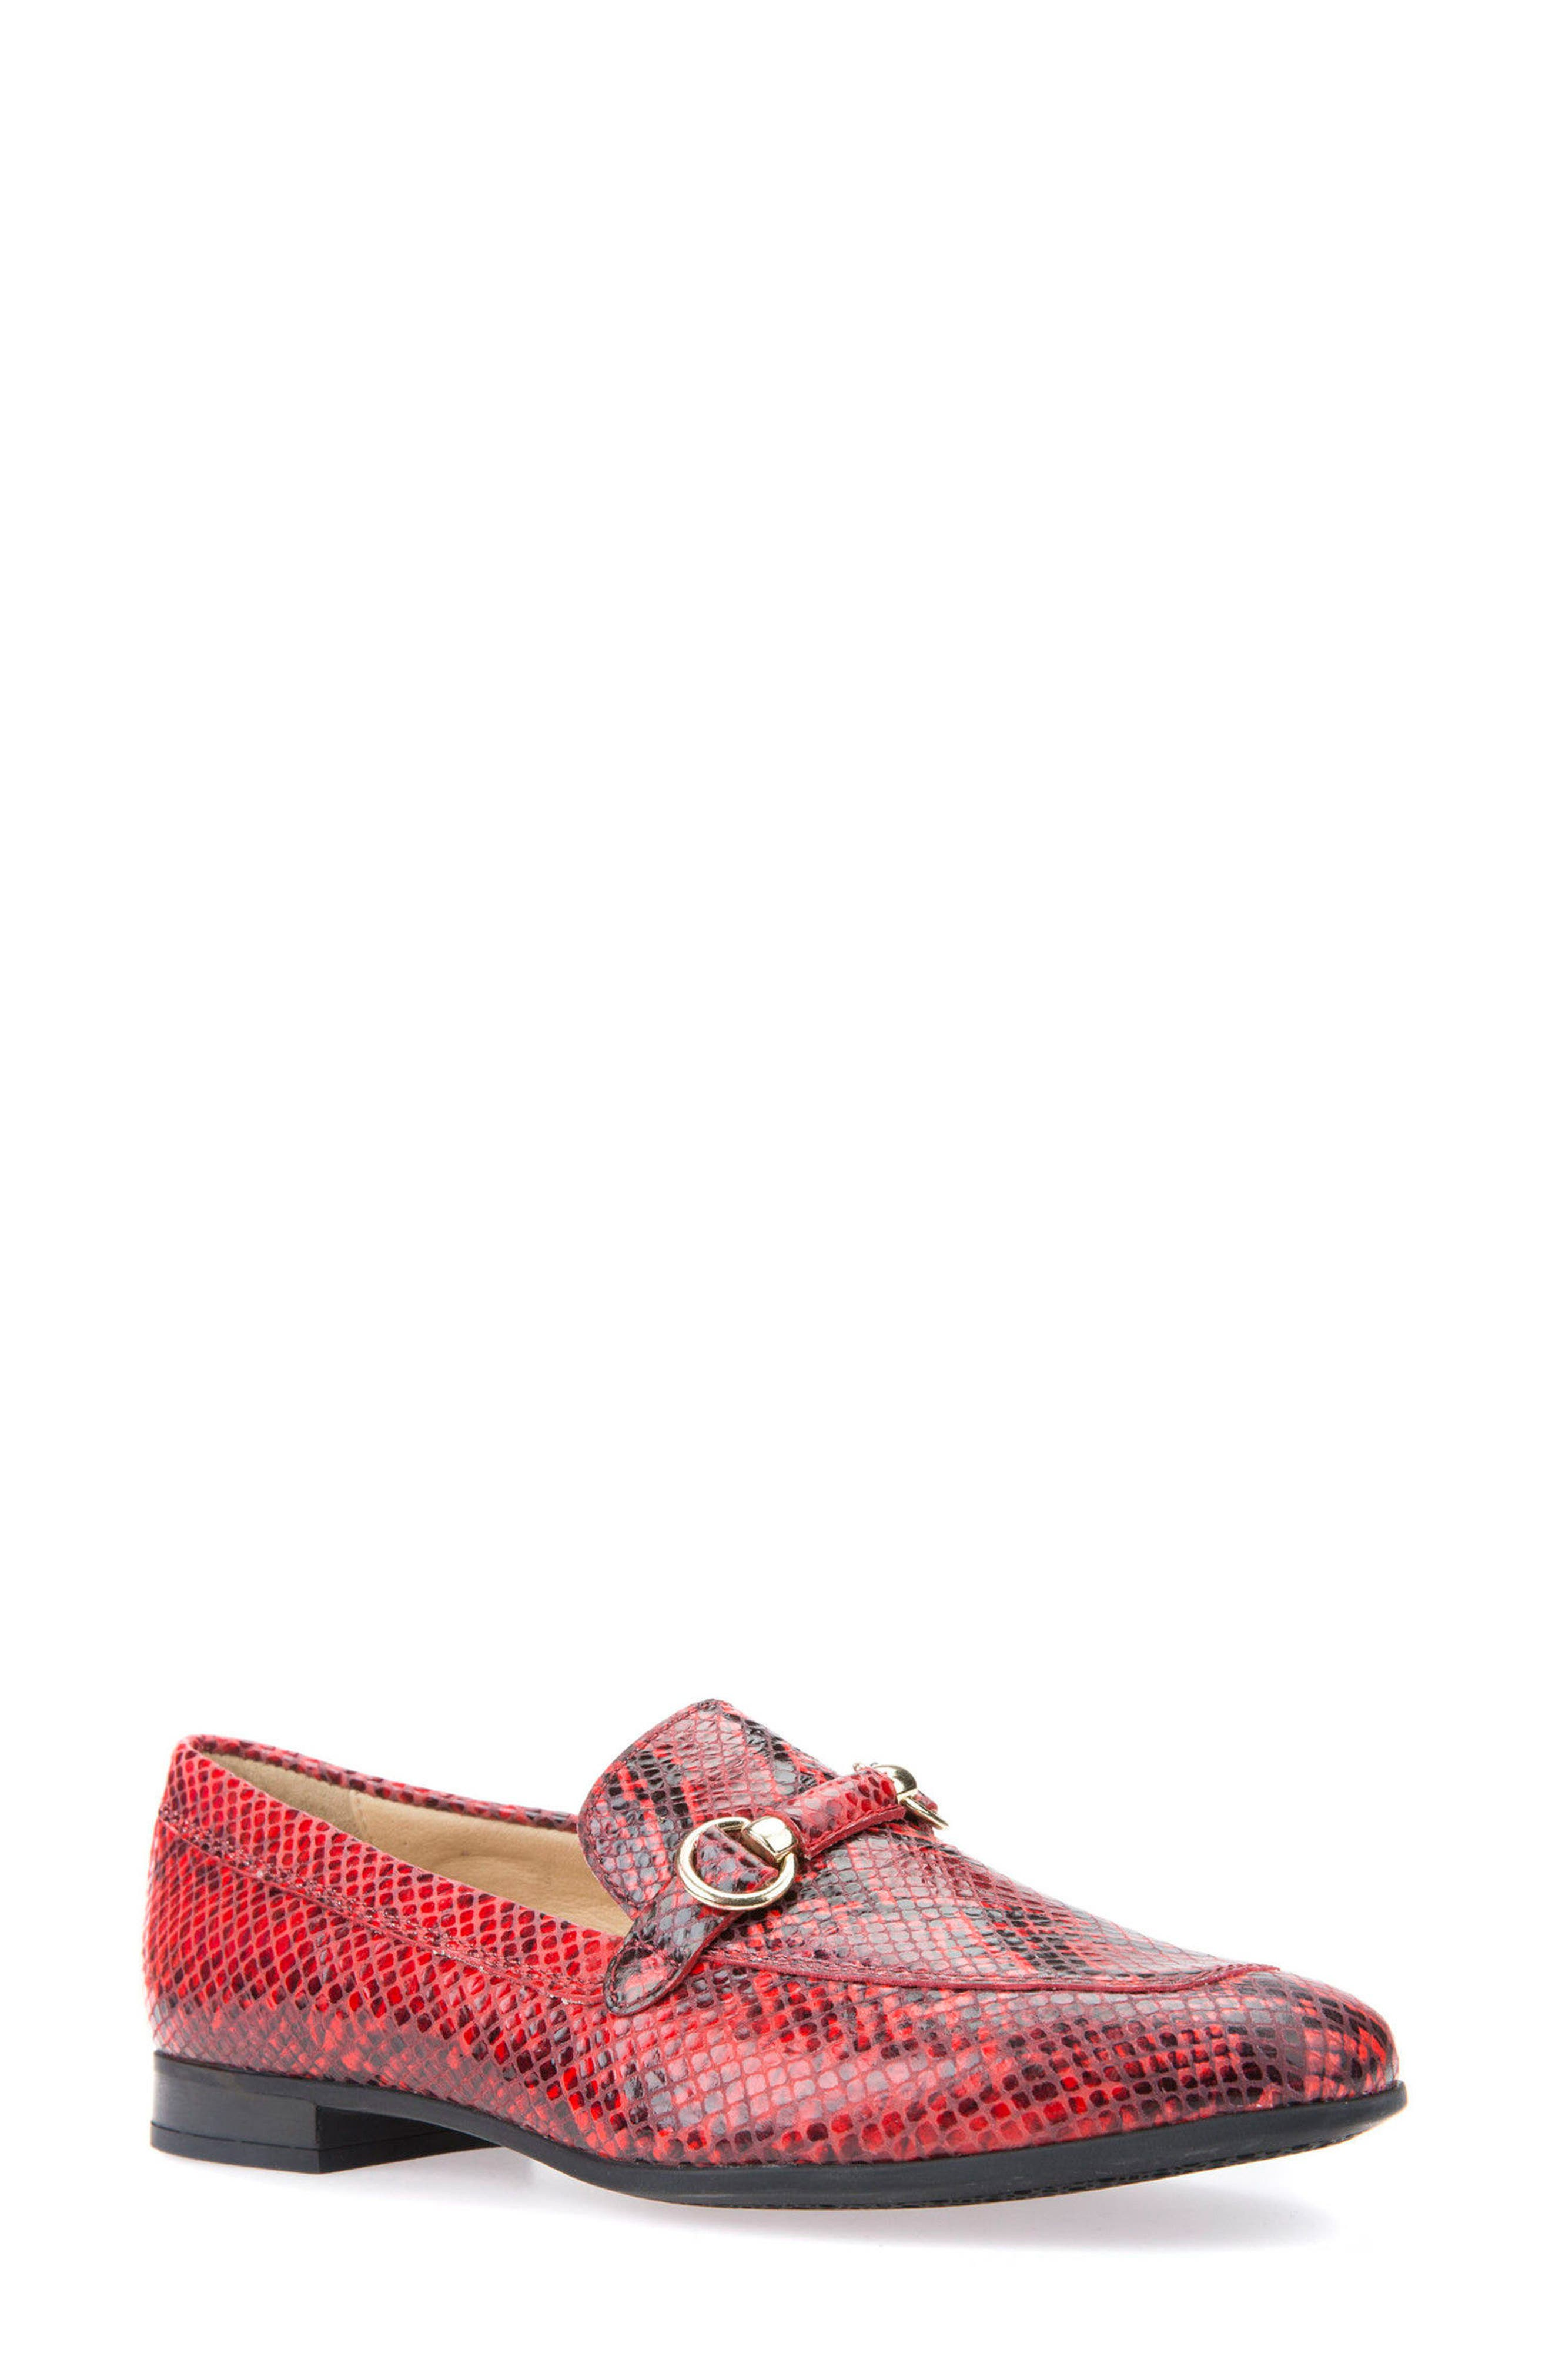 MARLYNA PENNY LOAFER